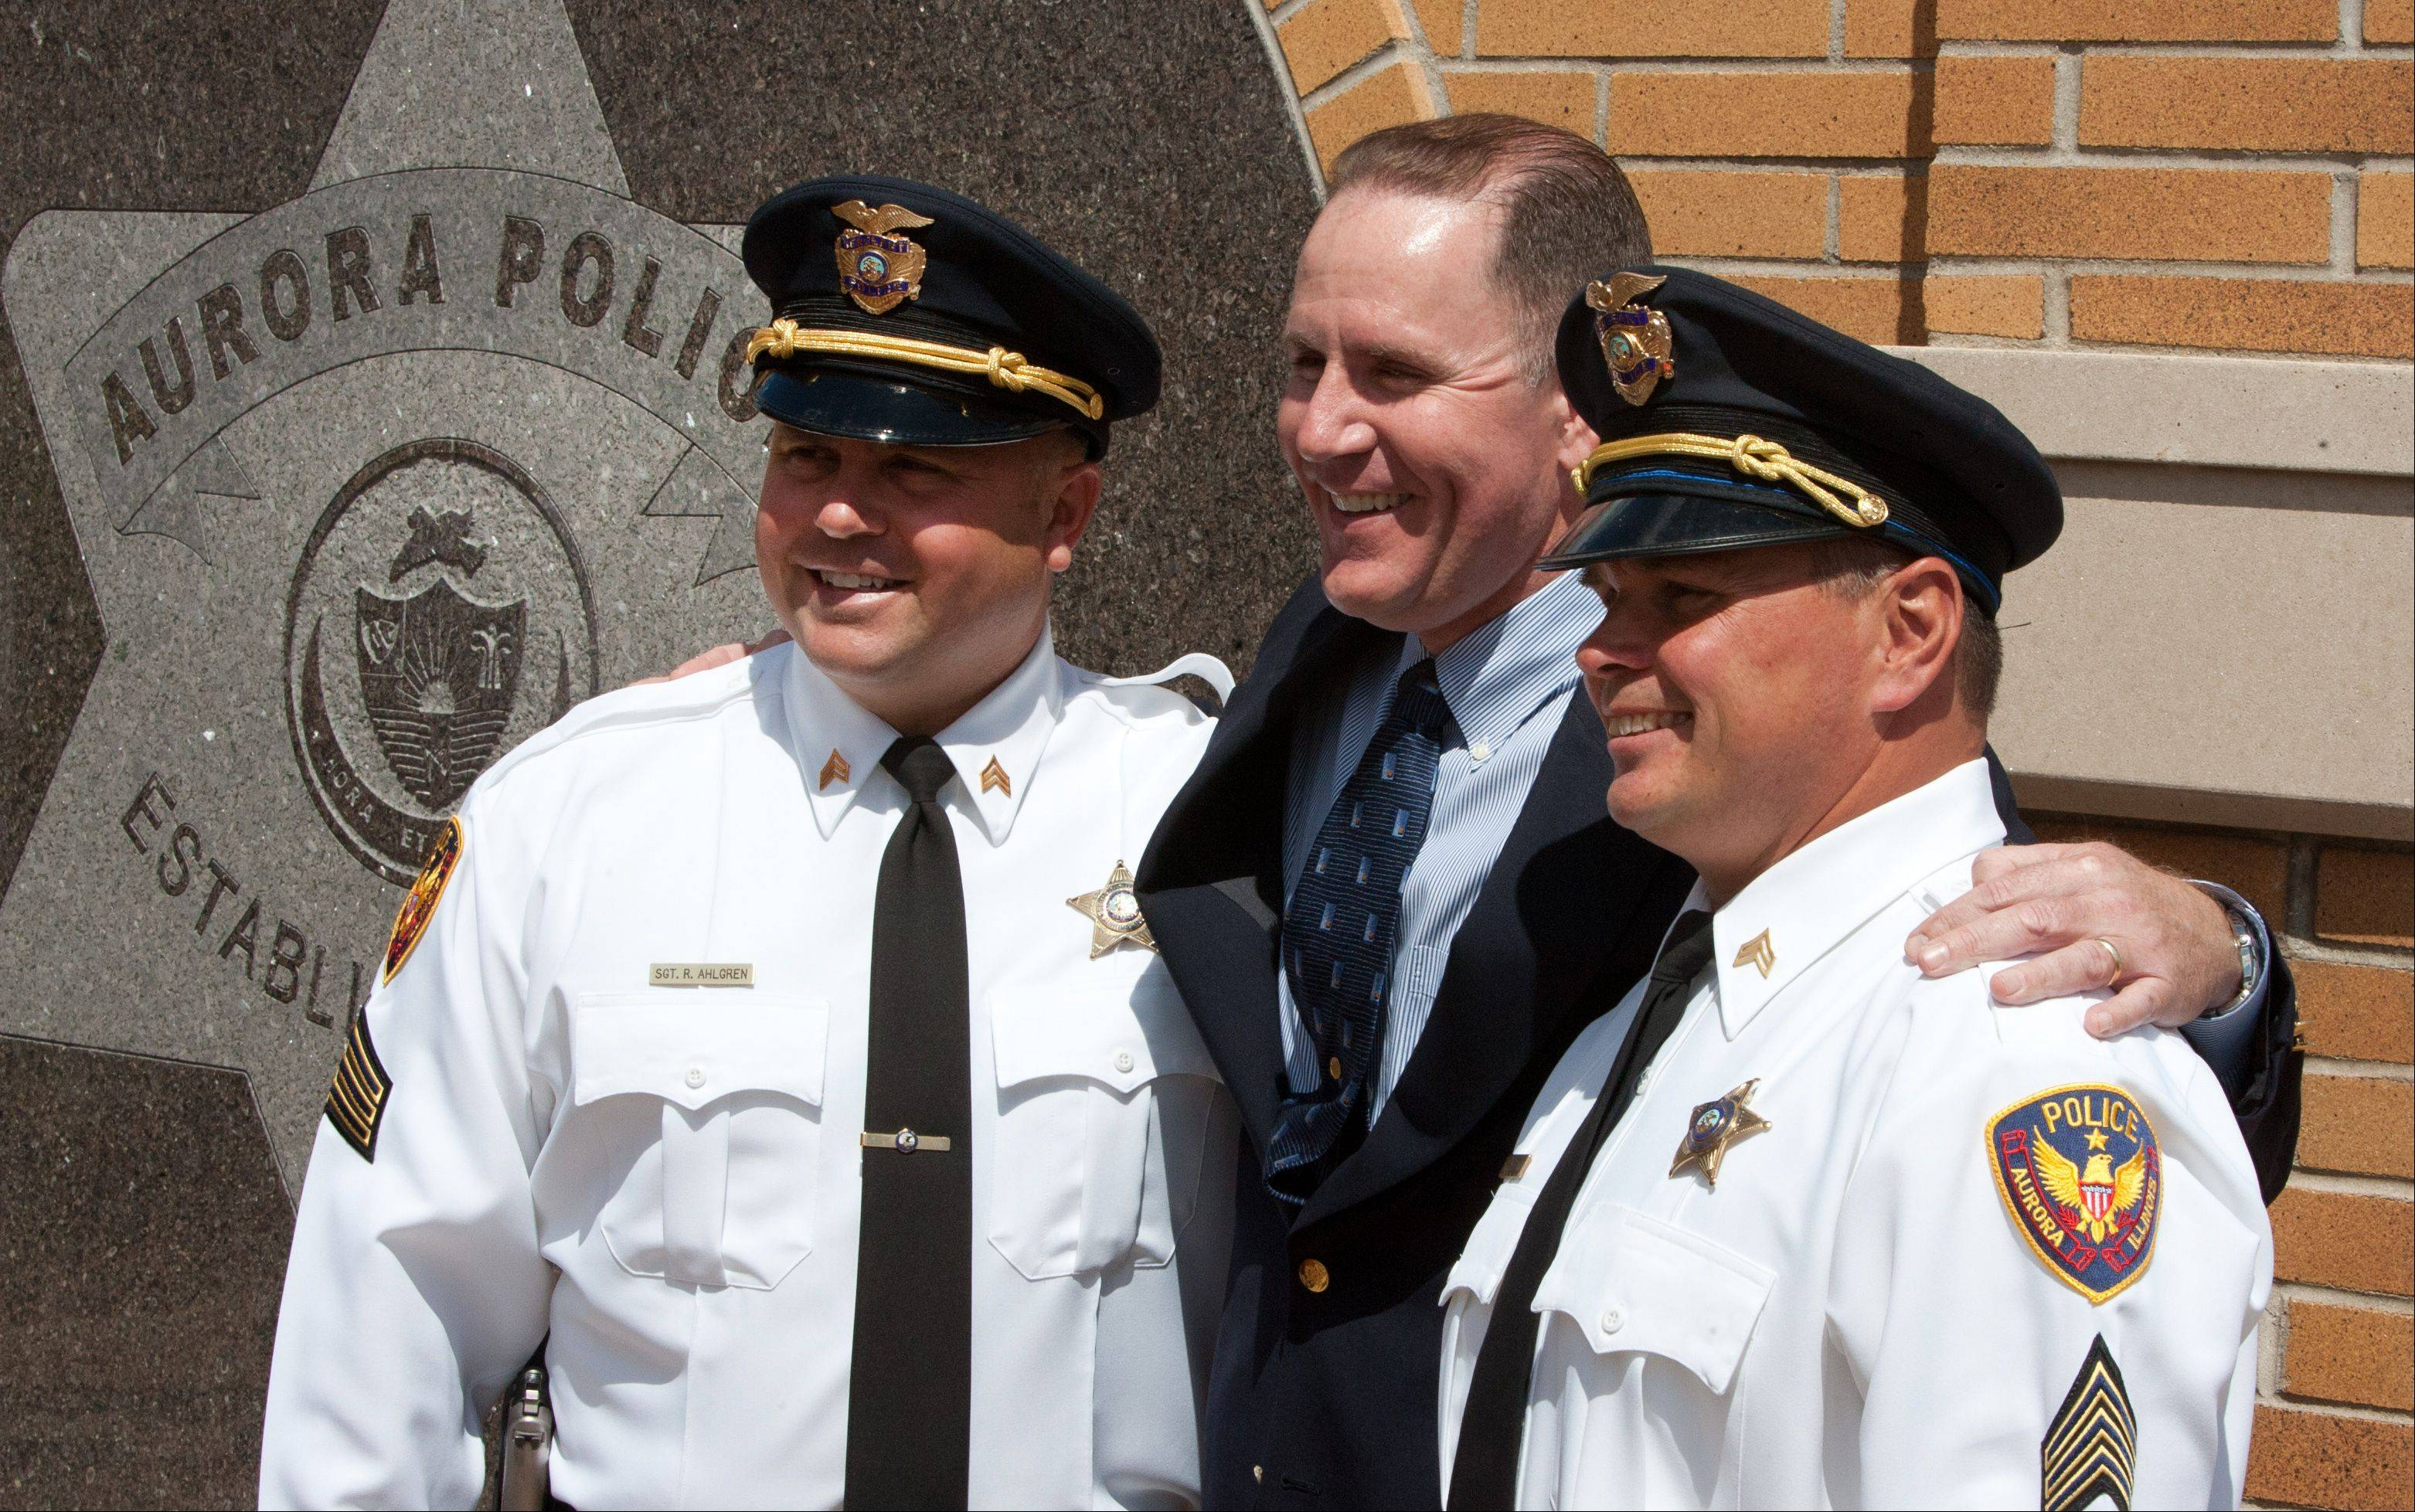 Jim Elenz, center, thanks Aurora police sergeants Rick Ahlgren and Daniel Eppard for their rescue efforts.